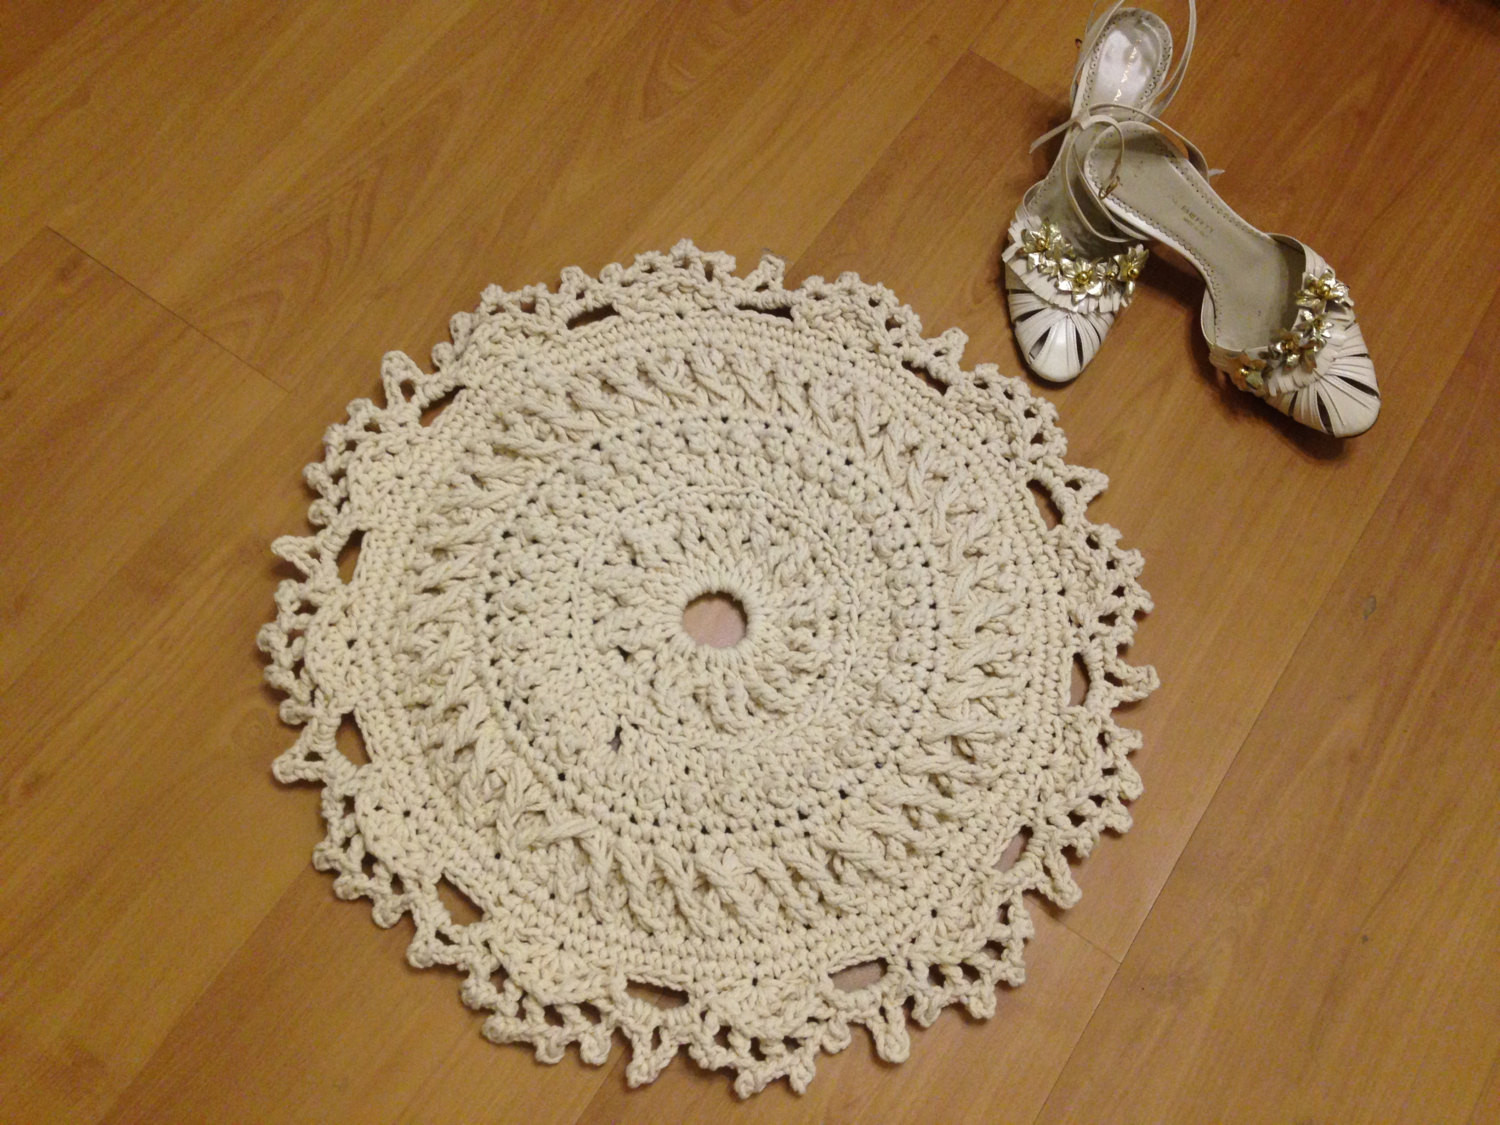 New Available Crochet Cord Round Rug Doily Rug Cotton Round Doily Rug Of Fresh 50 Pics Doily Rug